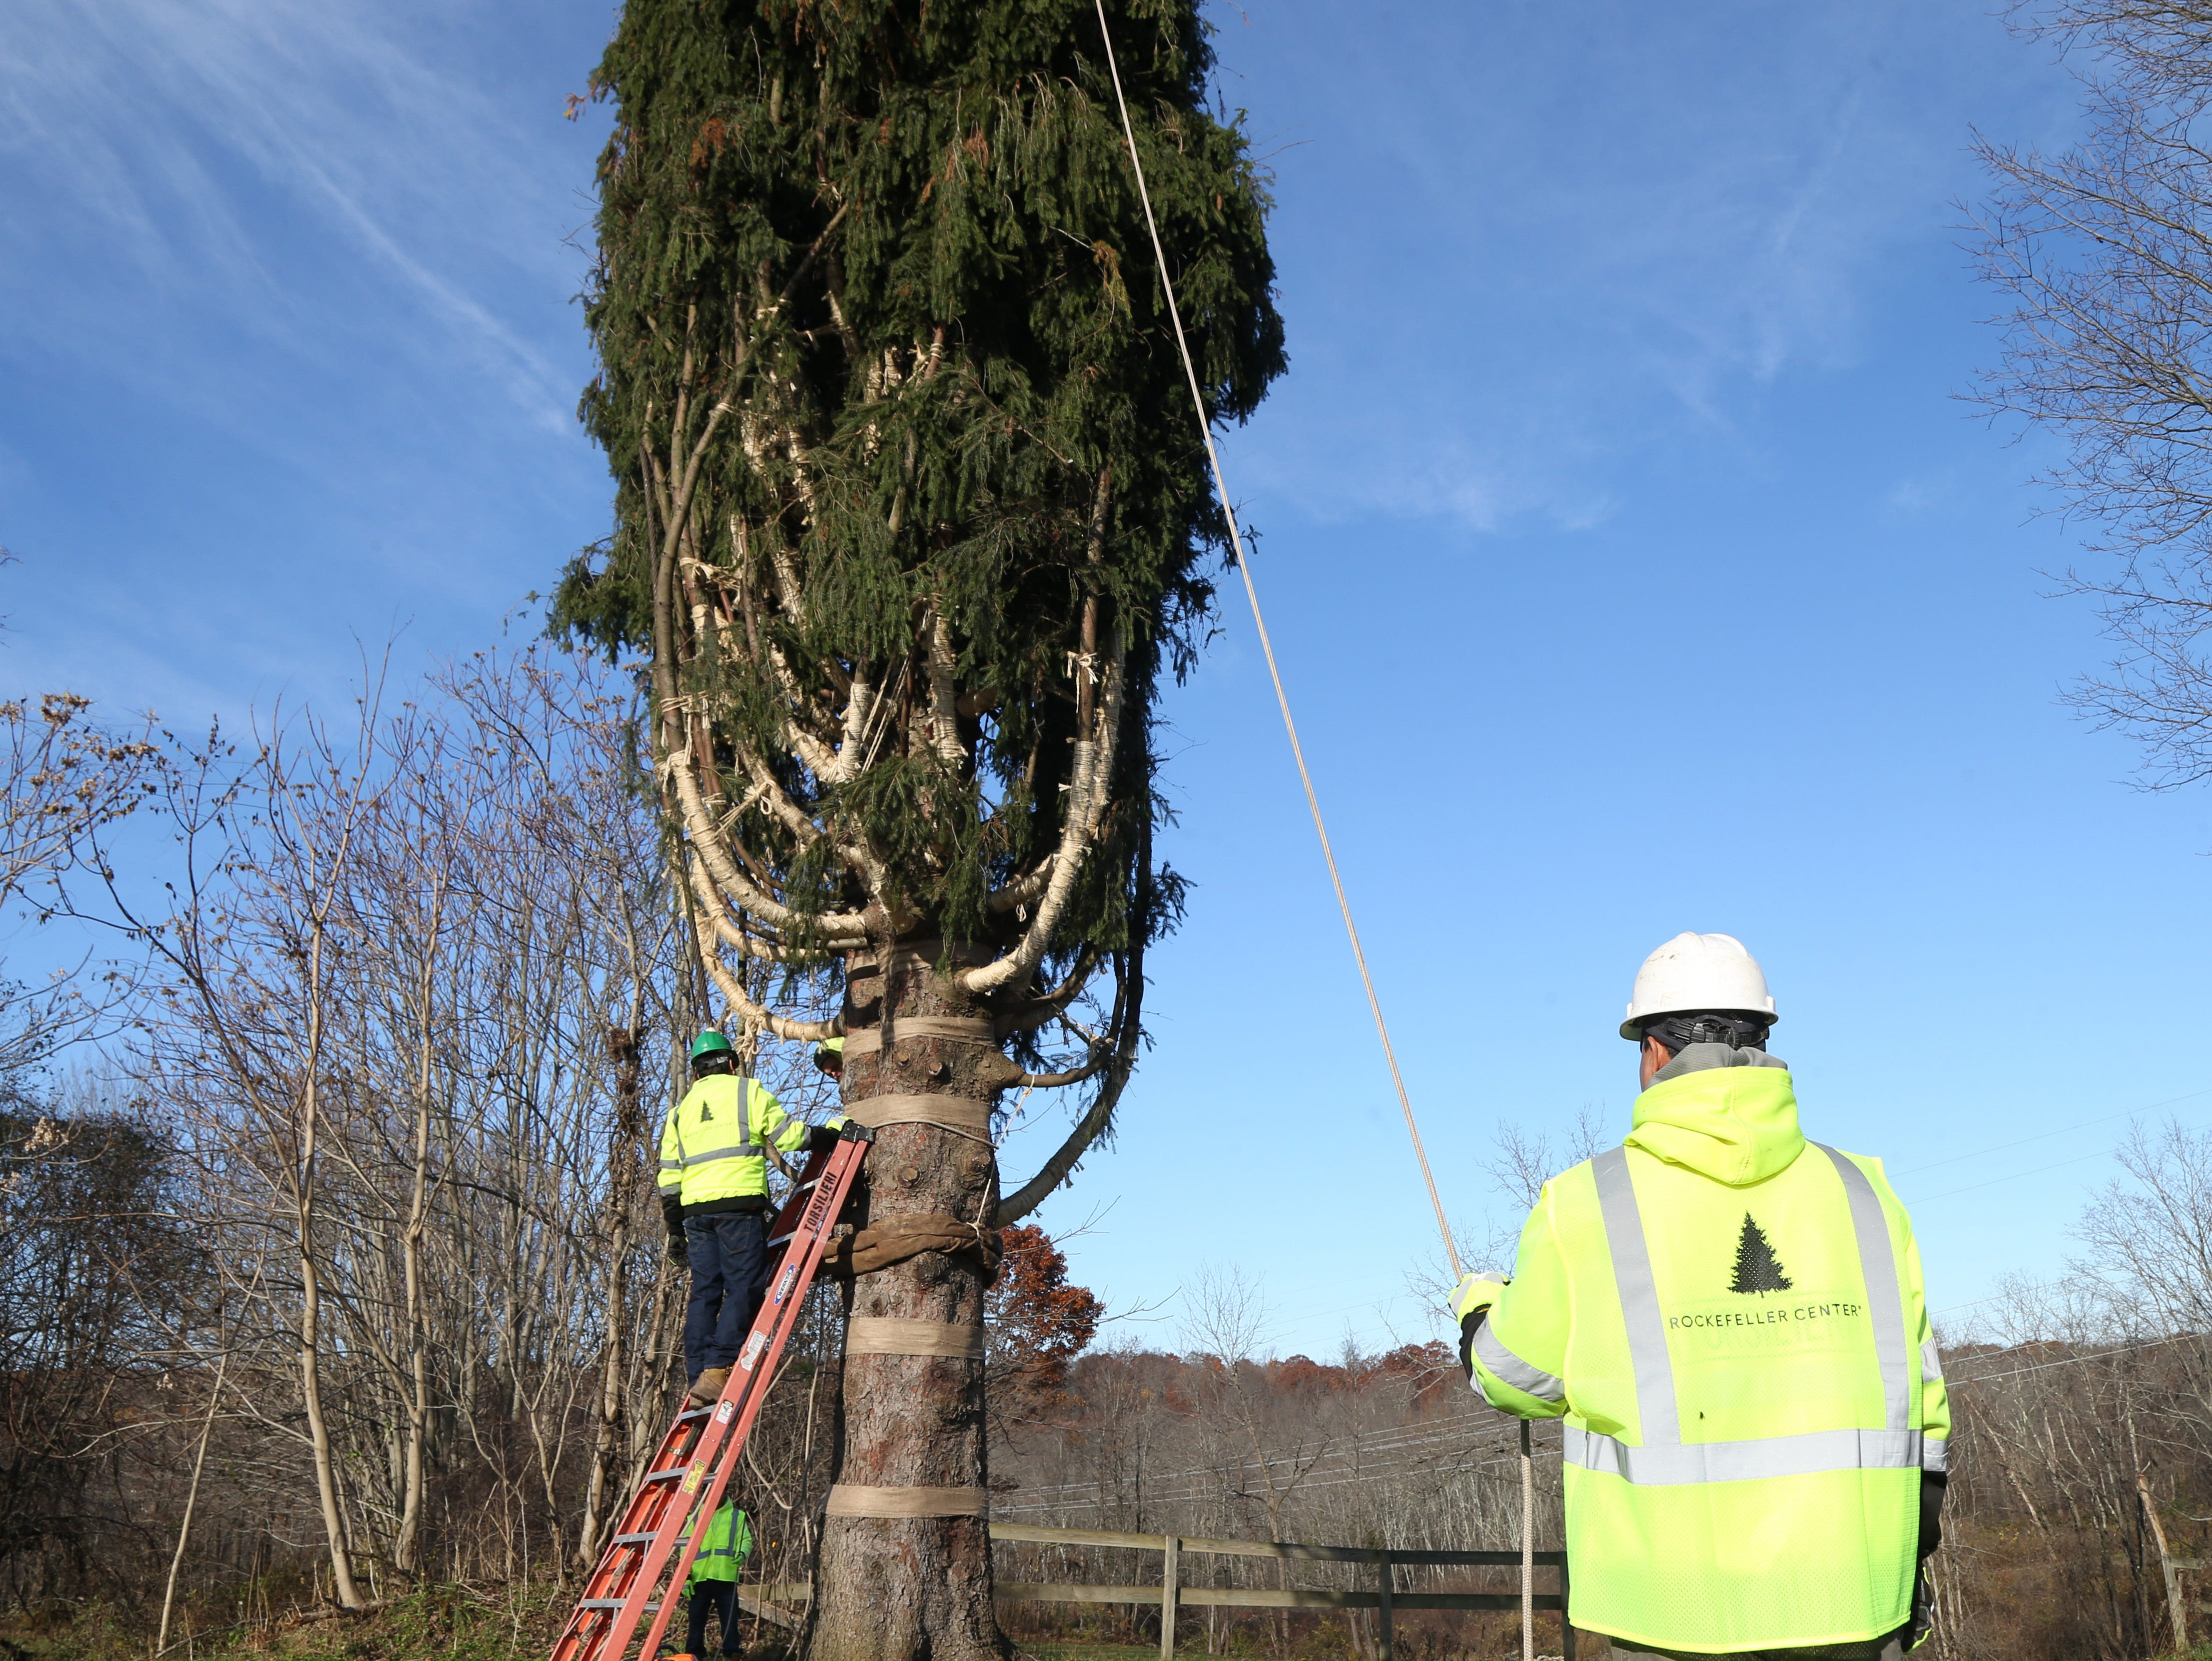 A tree crew prepares a Norway Spruce tree in Wallkill before it is cut down for the 2018 Rockefeller Center Christmas Tree on November 8, 2018.